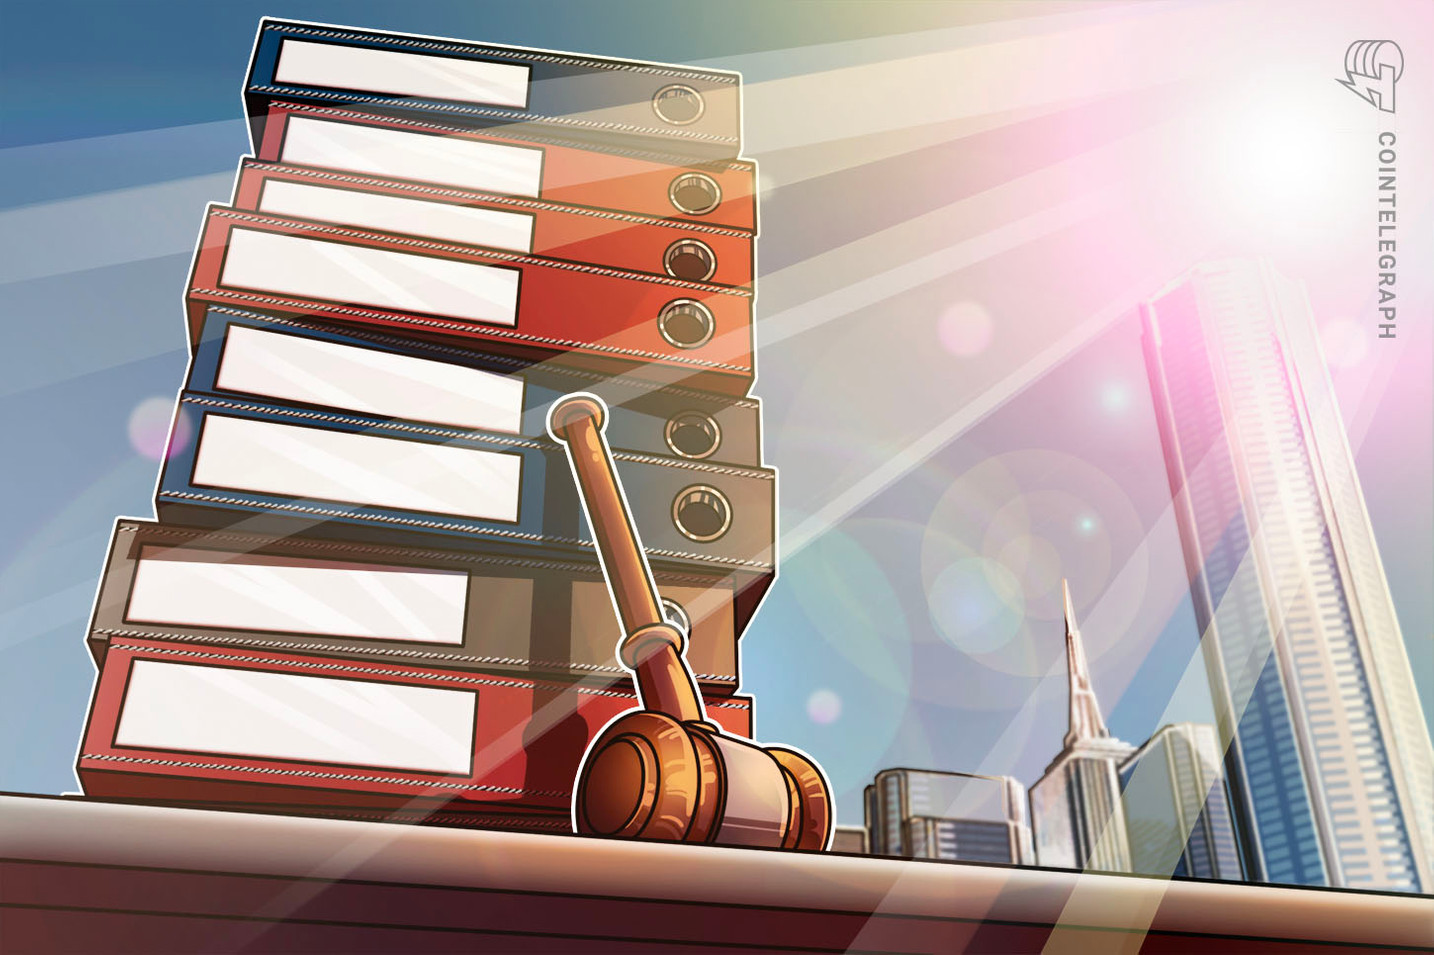 SEC lawsuit against Ripple set for virtual pretrial conference in February